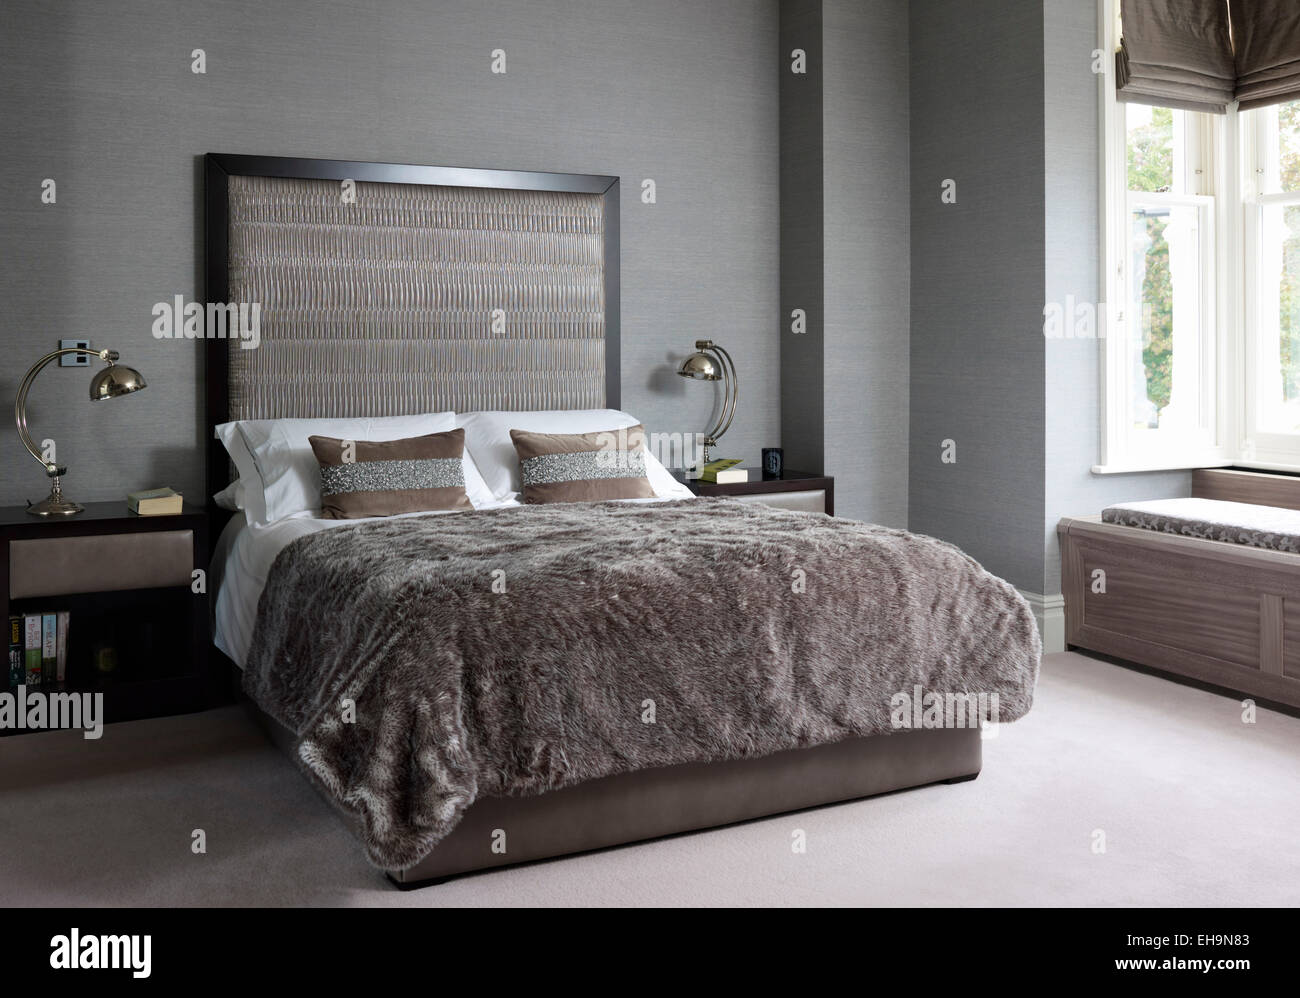 Lamps Bedroom Double Bed With Matching Side Tables And Lamps With Oversized